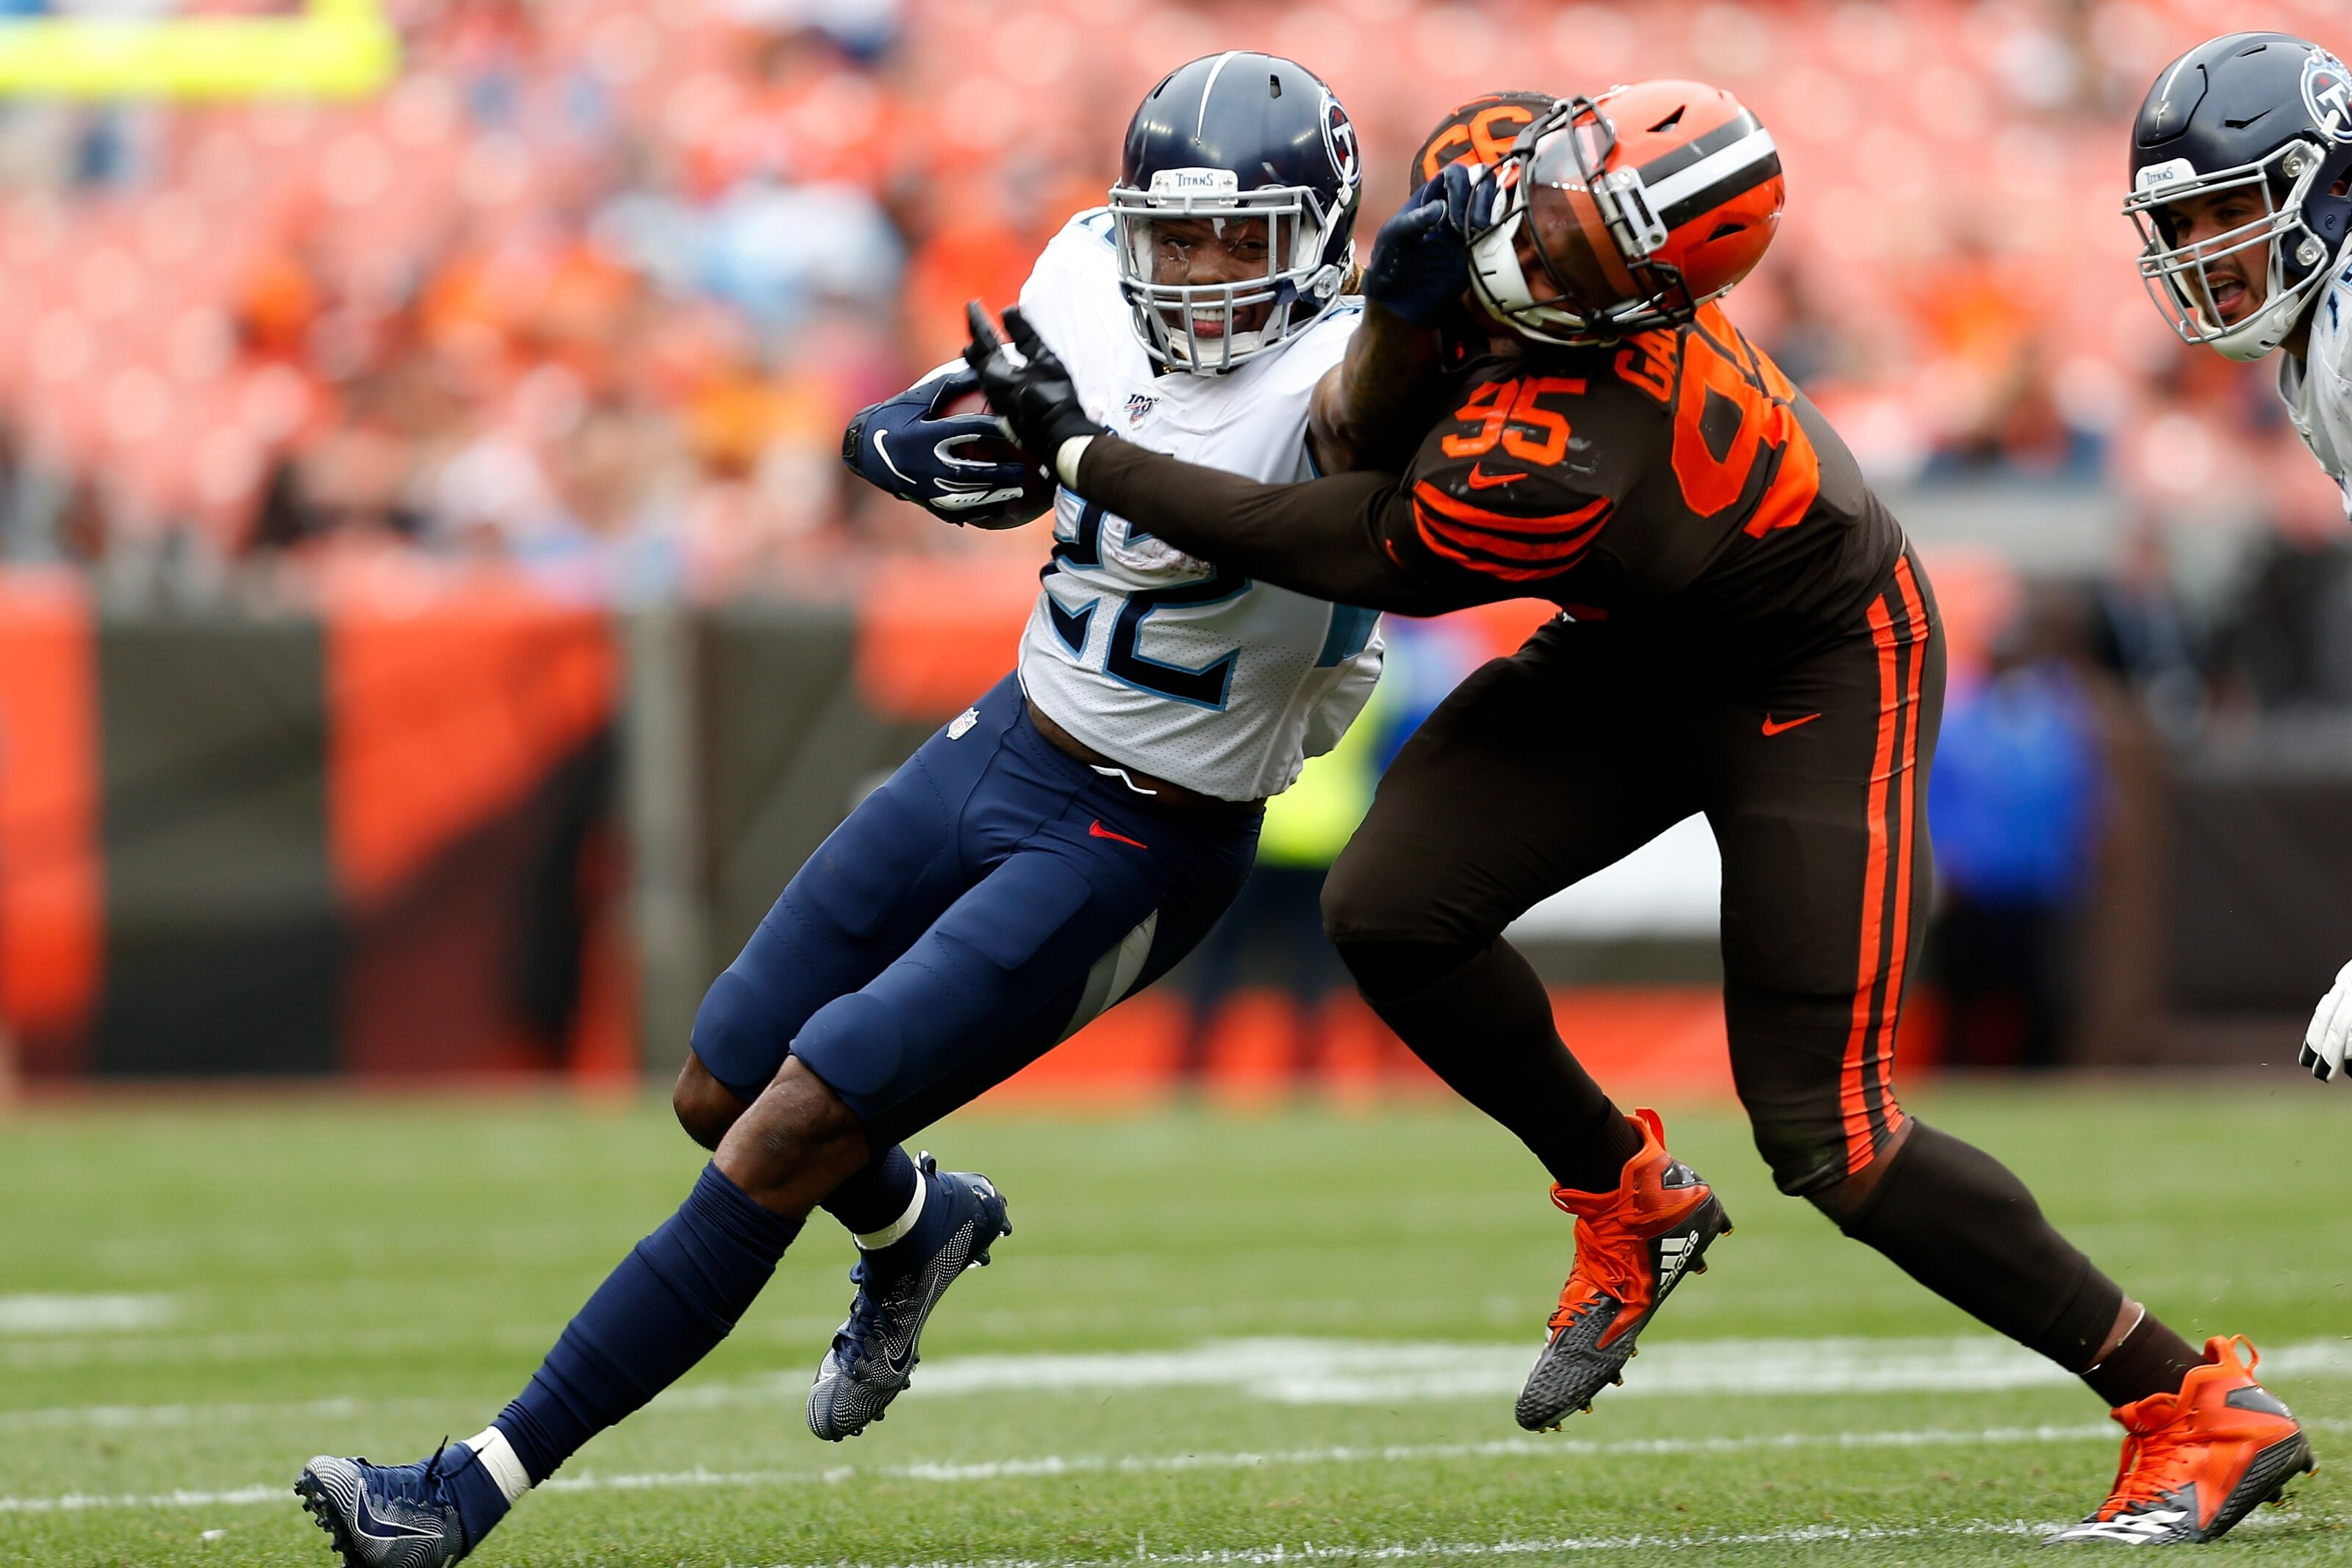 DraftKings/FanDuel NFL DFS Week 6 lineup advice: 3 Titans to consider